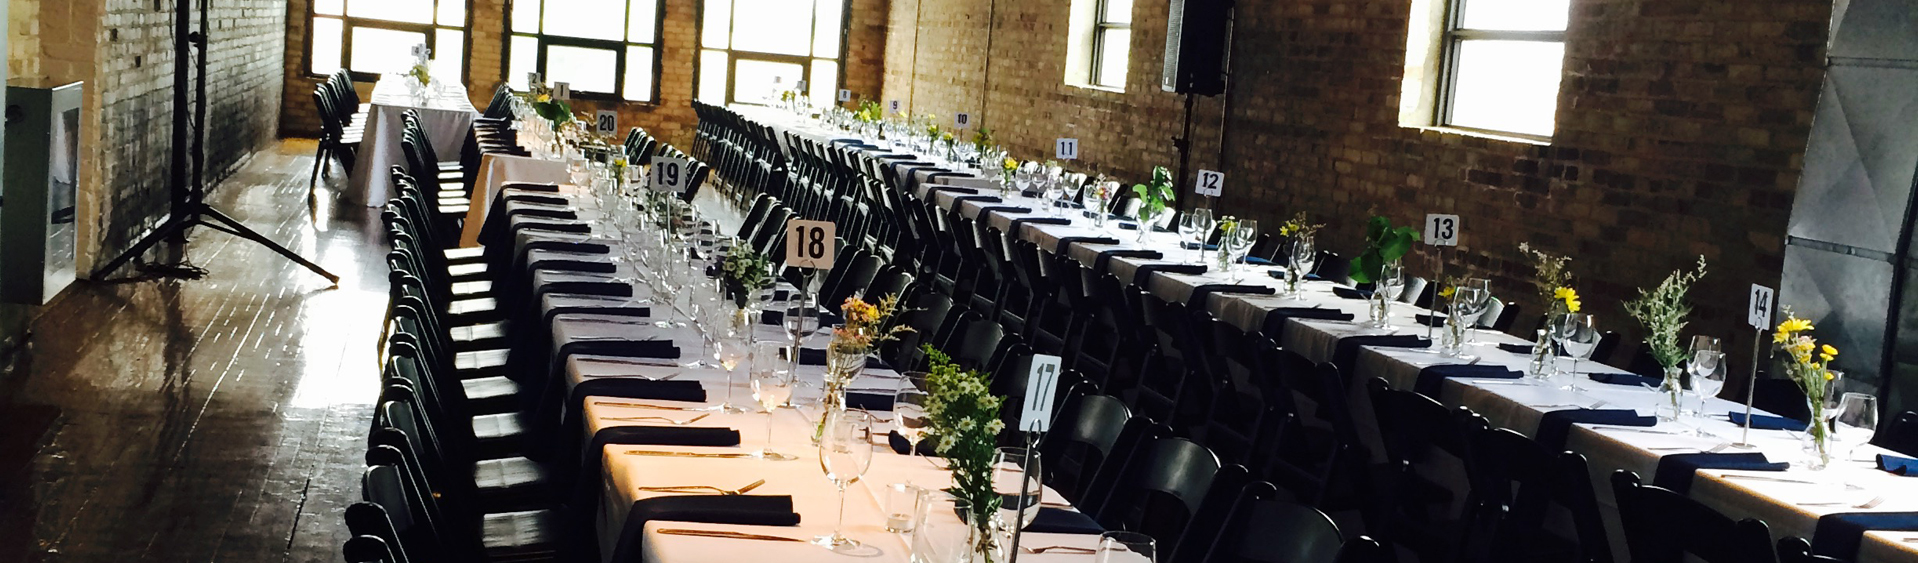 wedding, chairs, black, tables, glass, cups, flowers, table, cloth, napkins, forks, knives, numbers, brick, wall, windows, room, wood, santo, pecado, mexican, catering, toronto, canada